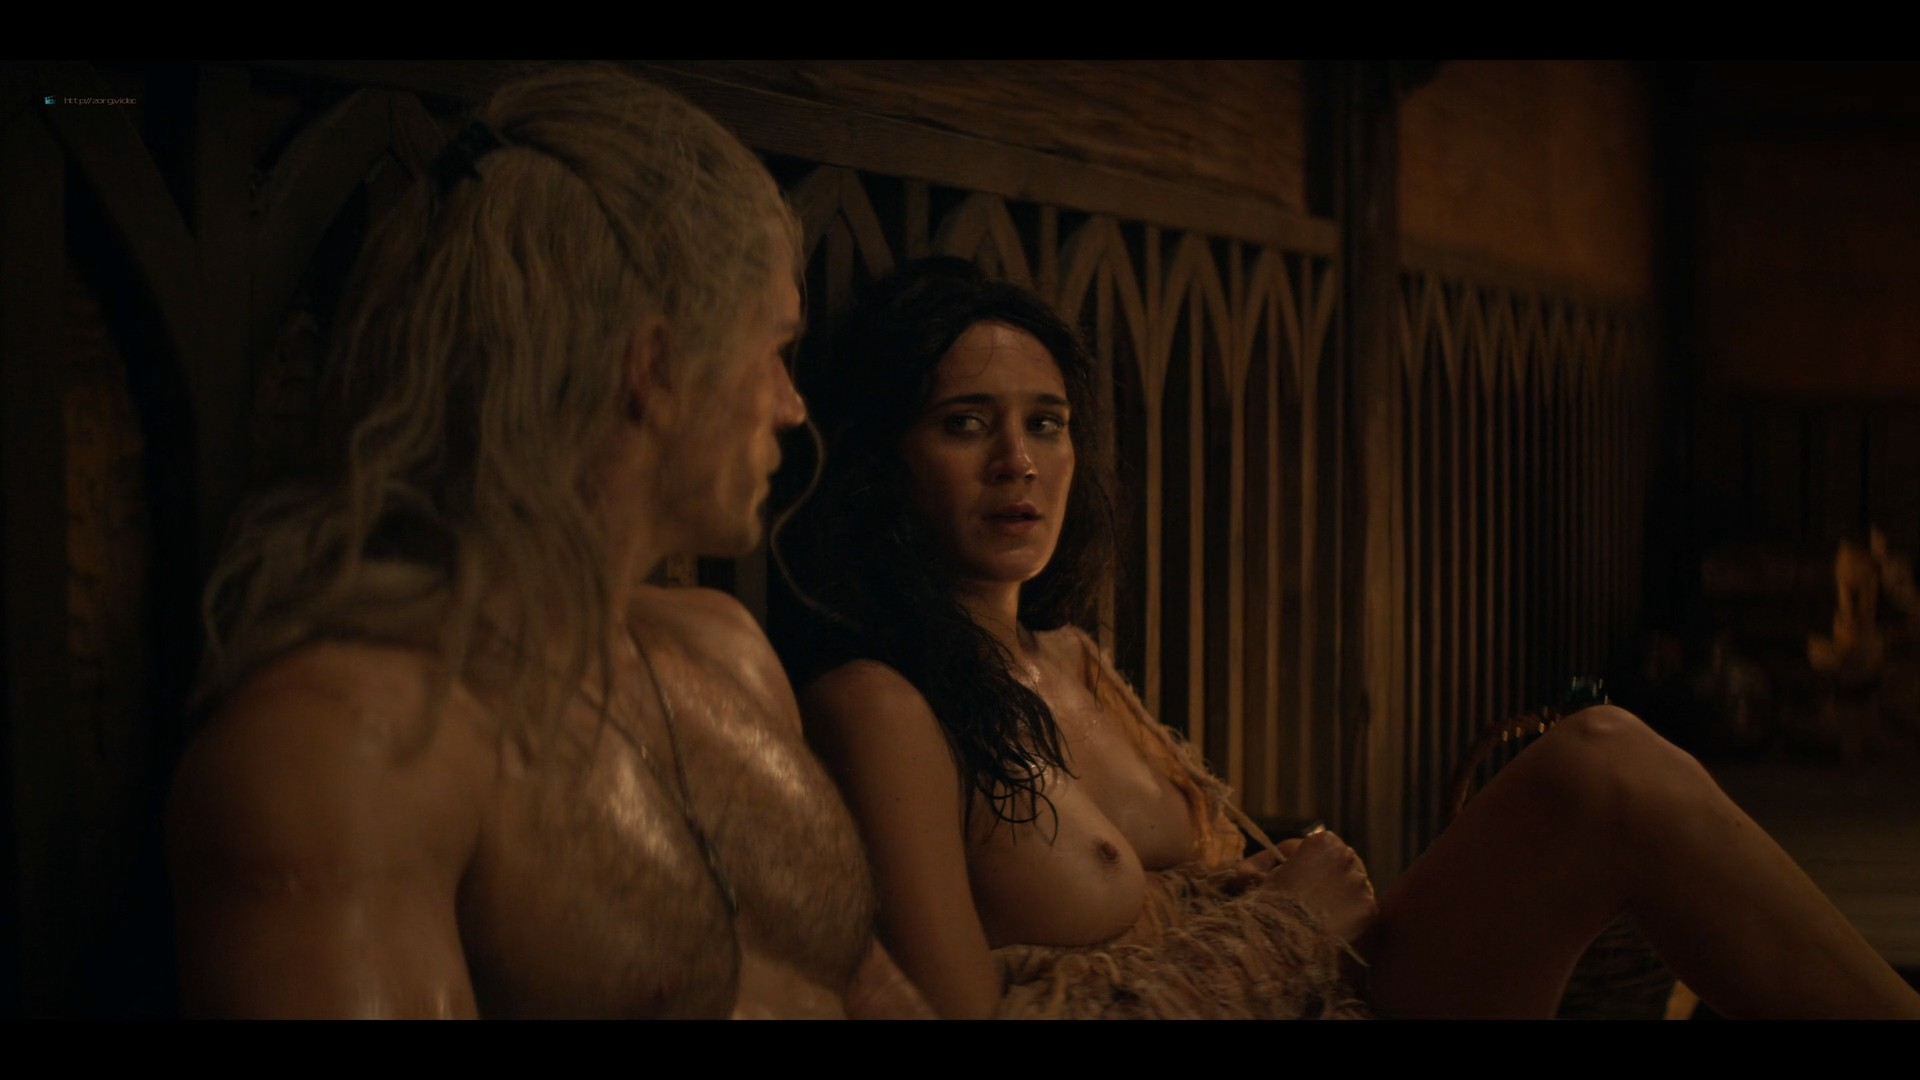 Anya Chalotra nude sex others nude too - The Witcher (2019) s1e1-3 HD 1080p WEB-DL (11)